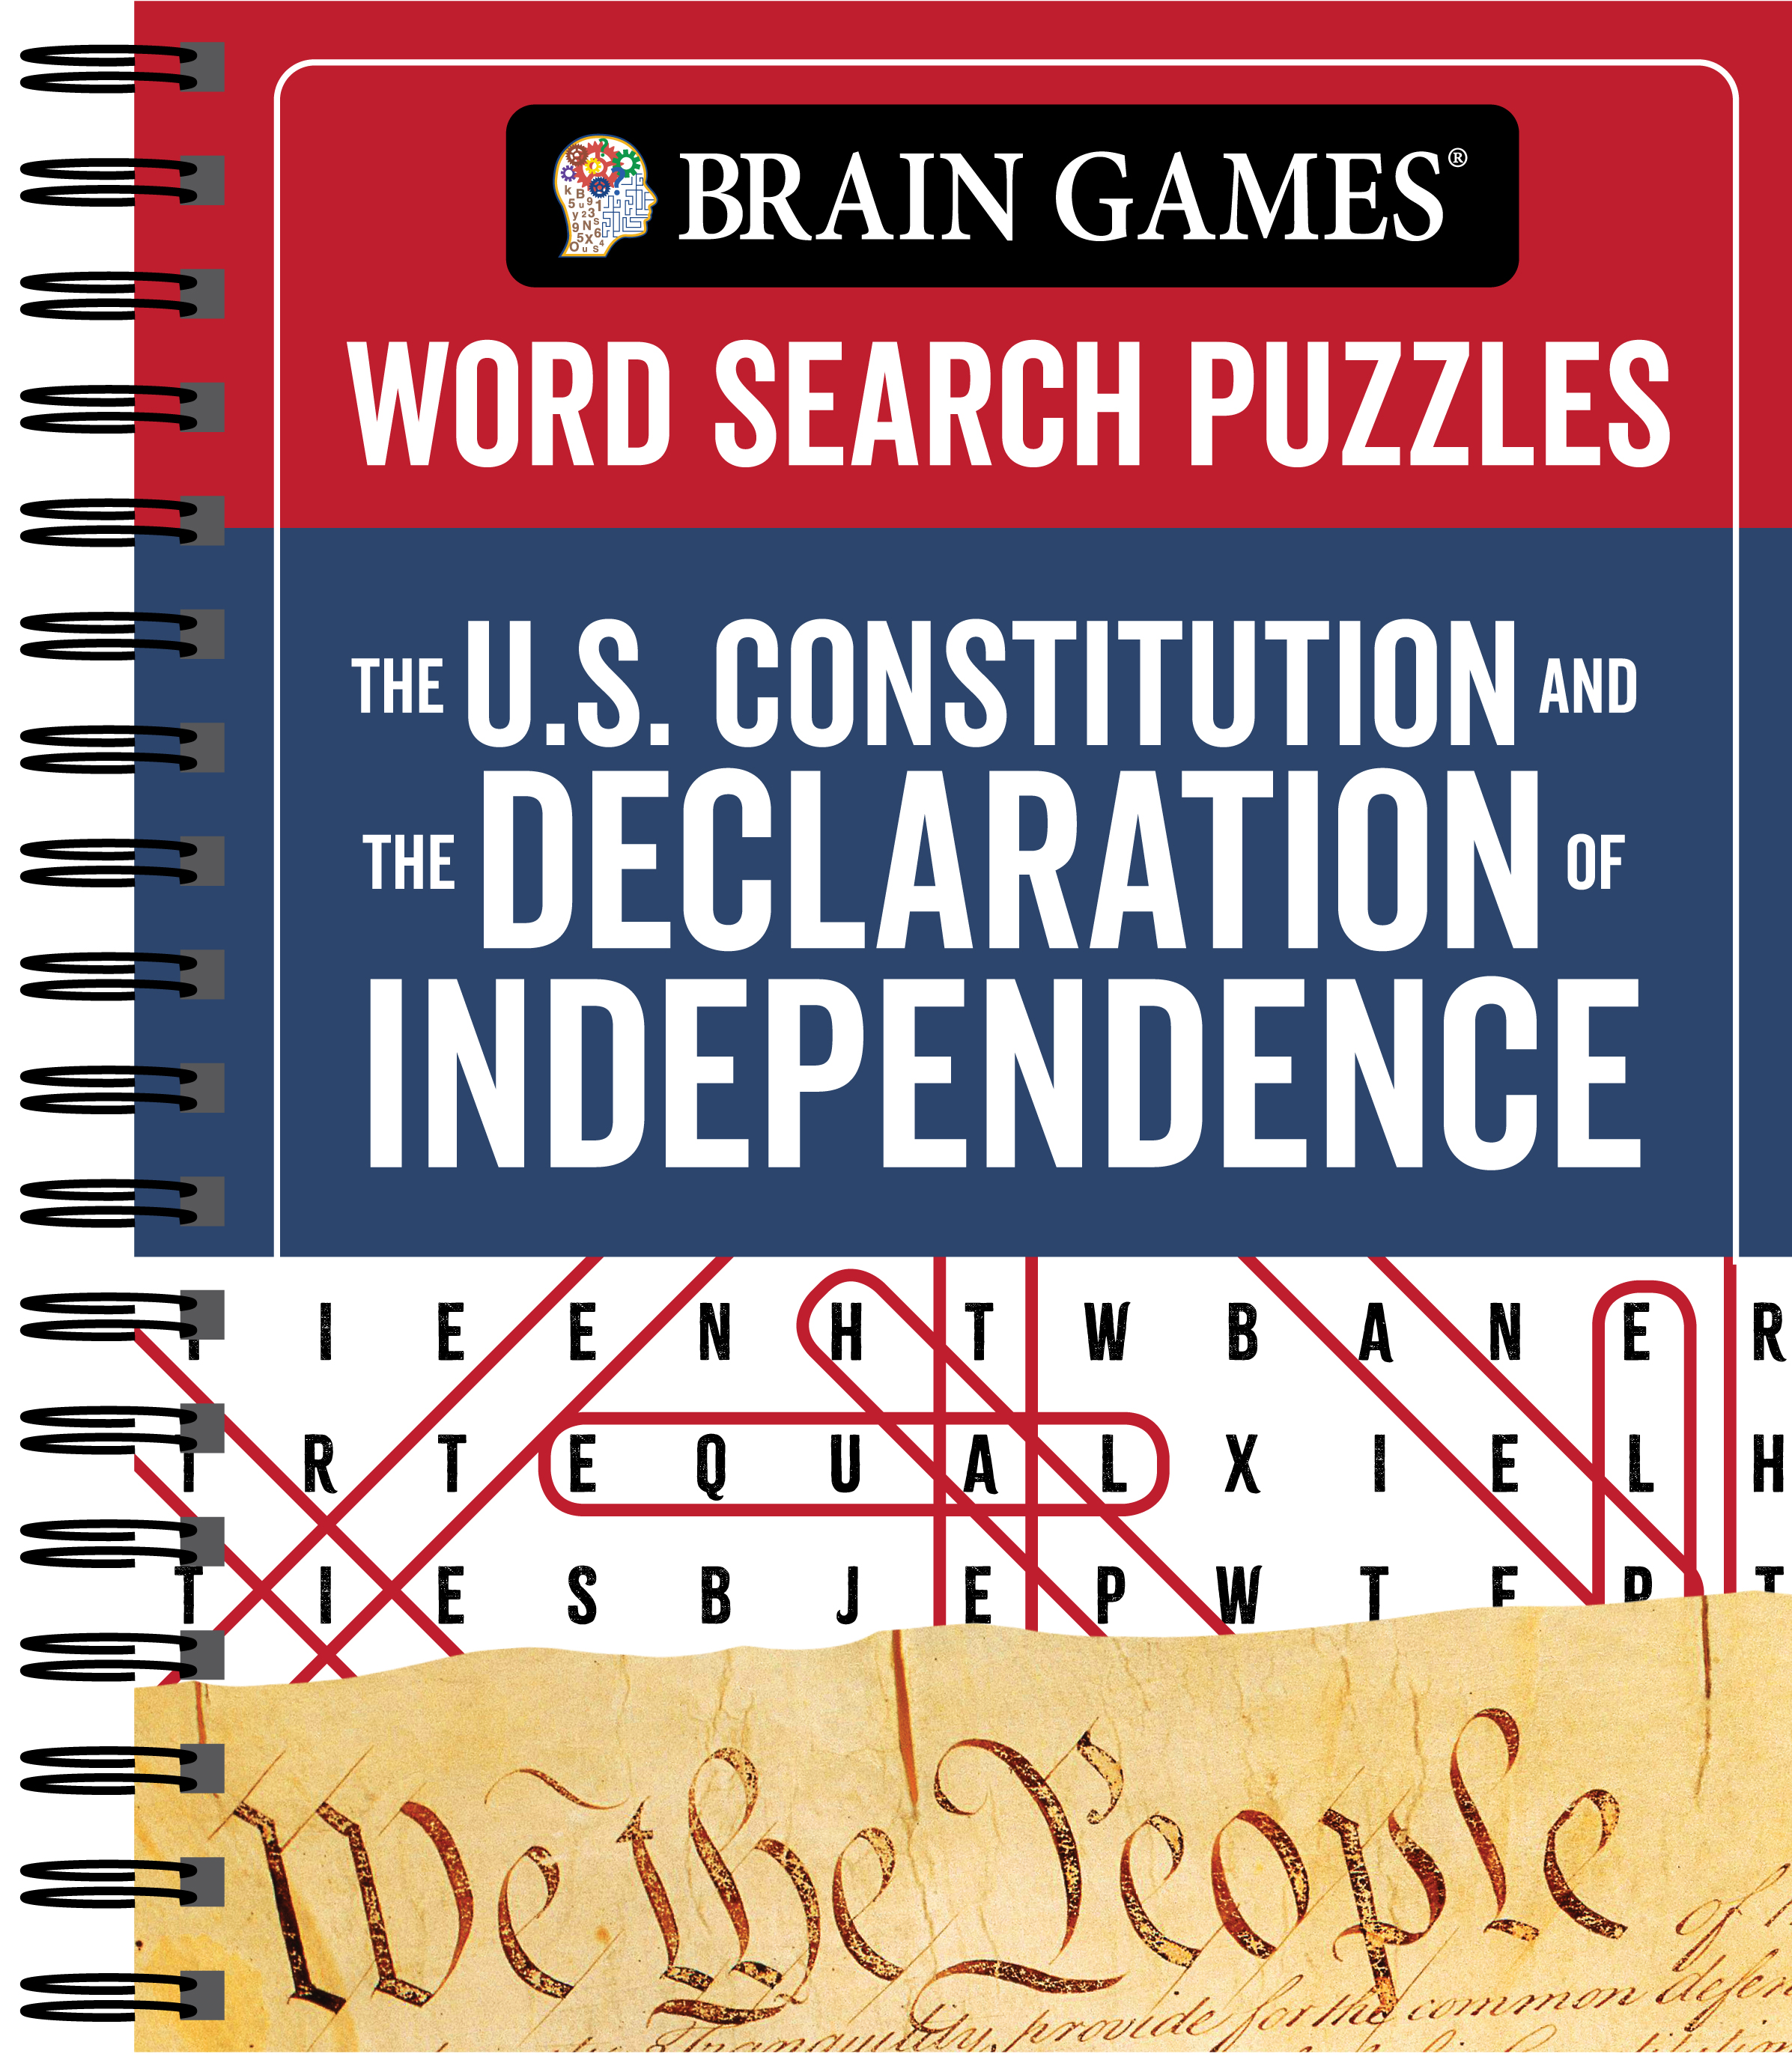 Brain Games - Word Search Puzzles: The U.S. Constitution and the Declaration of Independence Publications International LTD, Brain Games